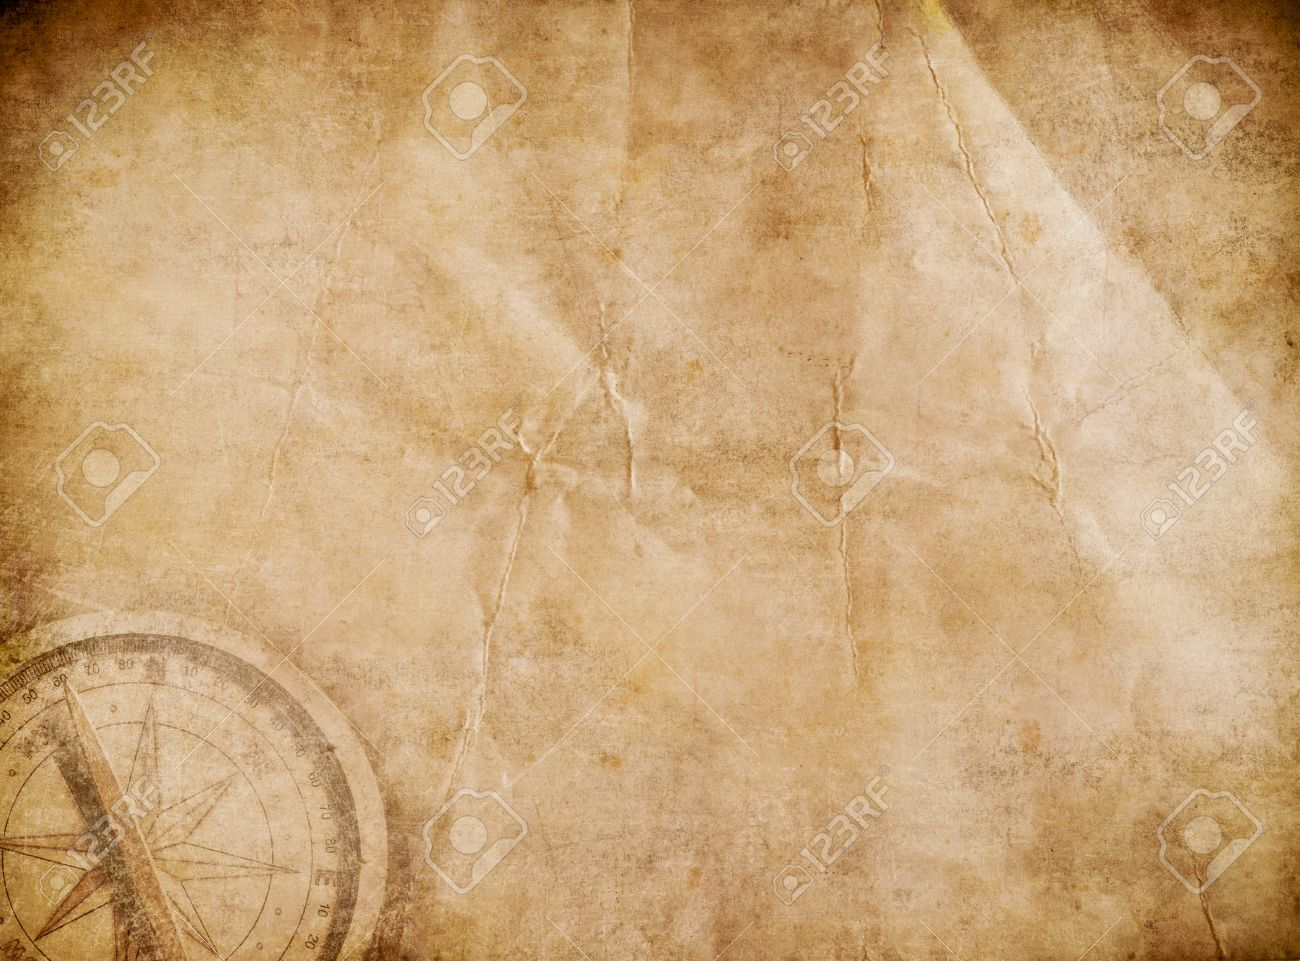 Aged pirates map background. Old treasure map. on magazine background, newspaper background, old nautical maps, paper background, wood background, old world cartography, key background, old wallpaper, bouquet background, old compass, old boats, old us highway maps, old treasure maps, space background, city background,